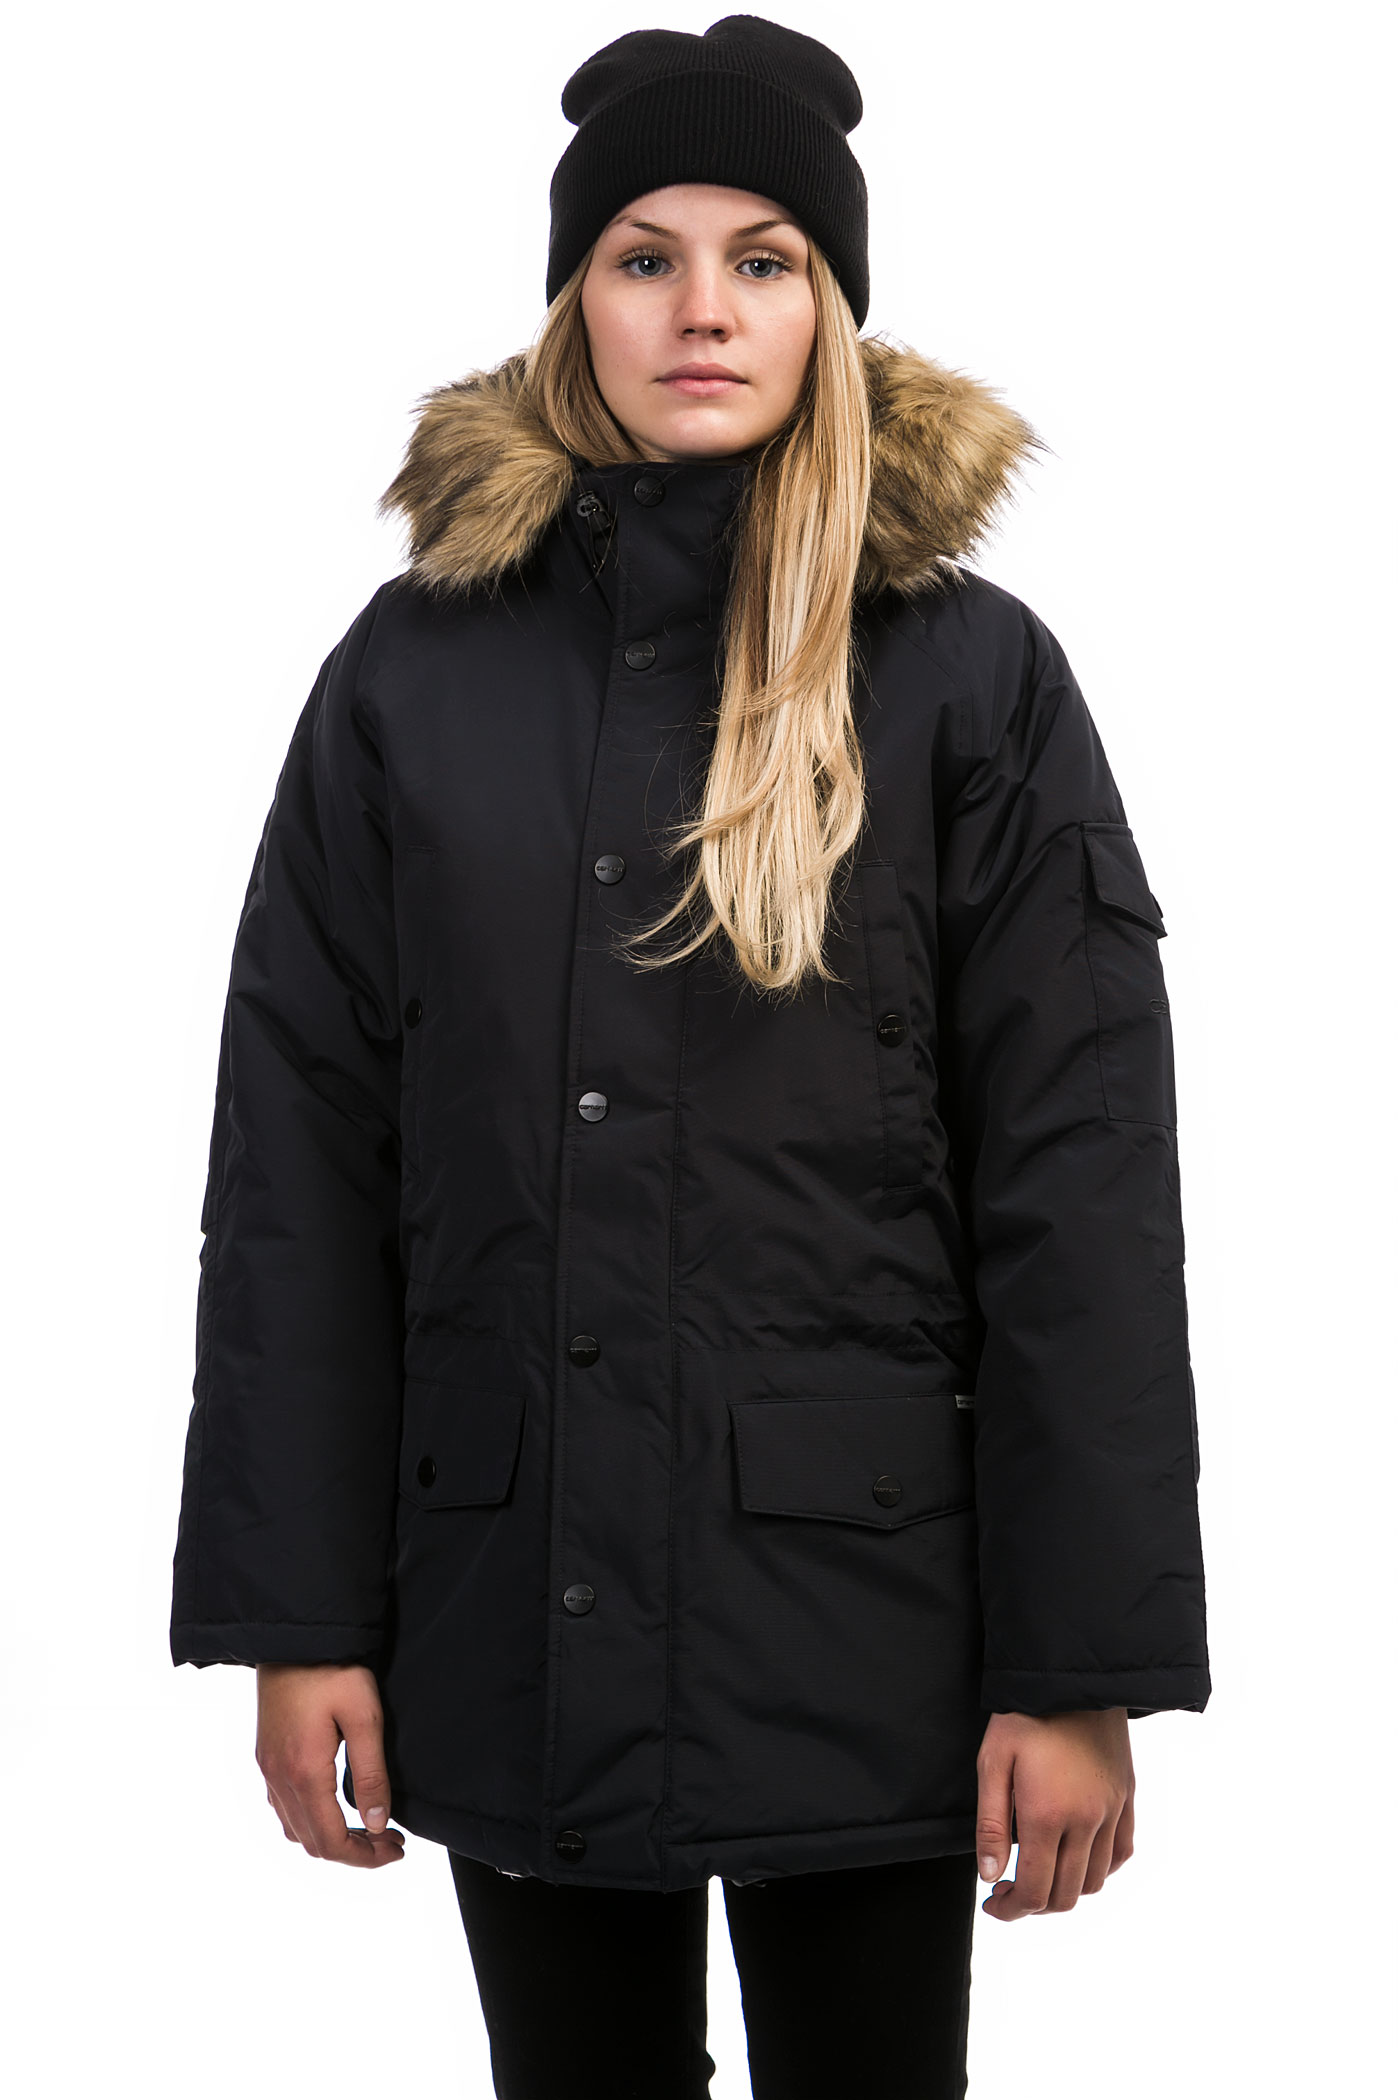 Carhartt WIP W' Anchorage Parka Jacket women (dark navy black) buy ...